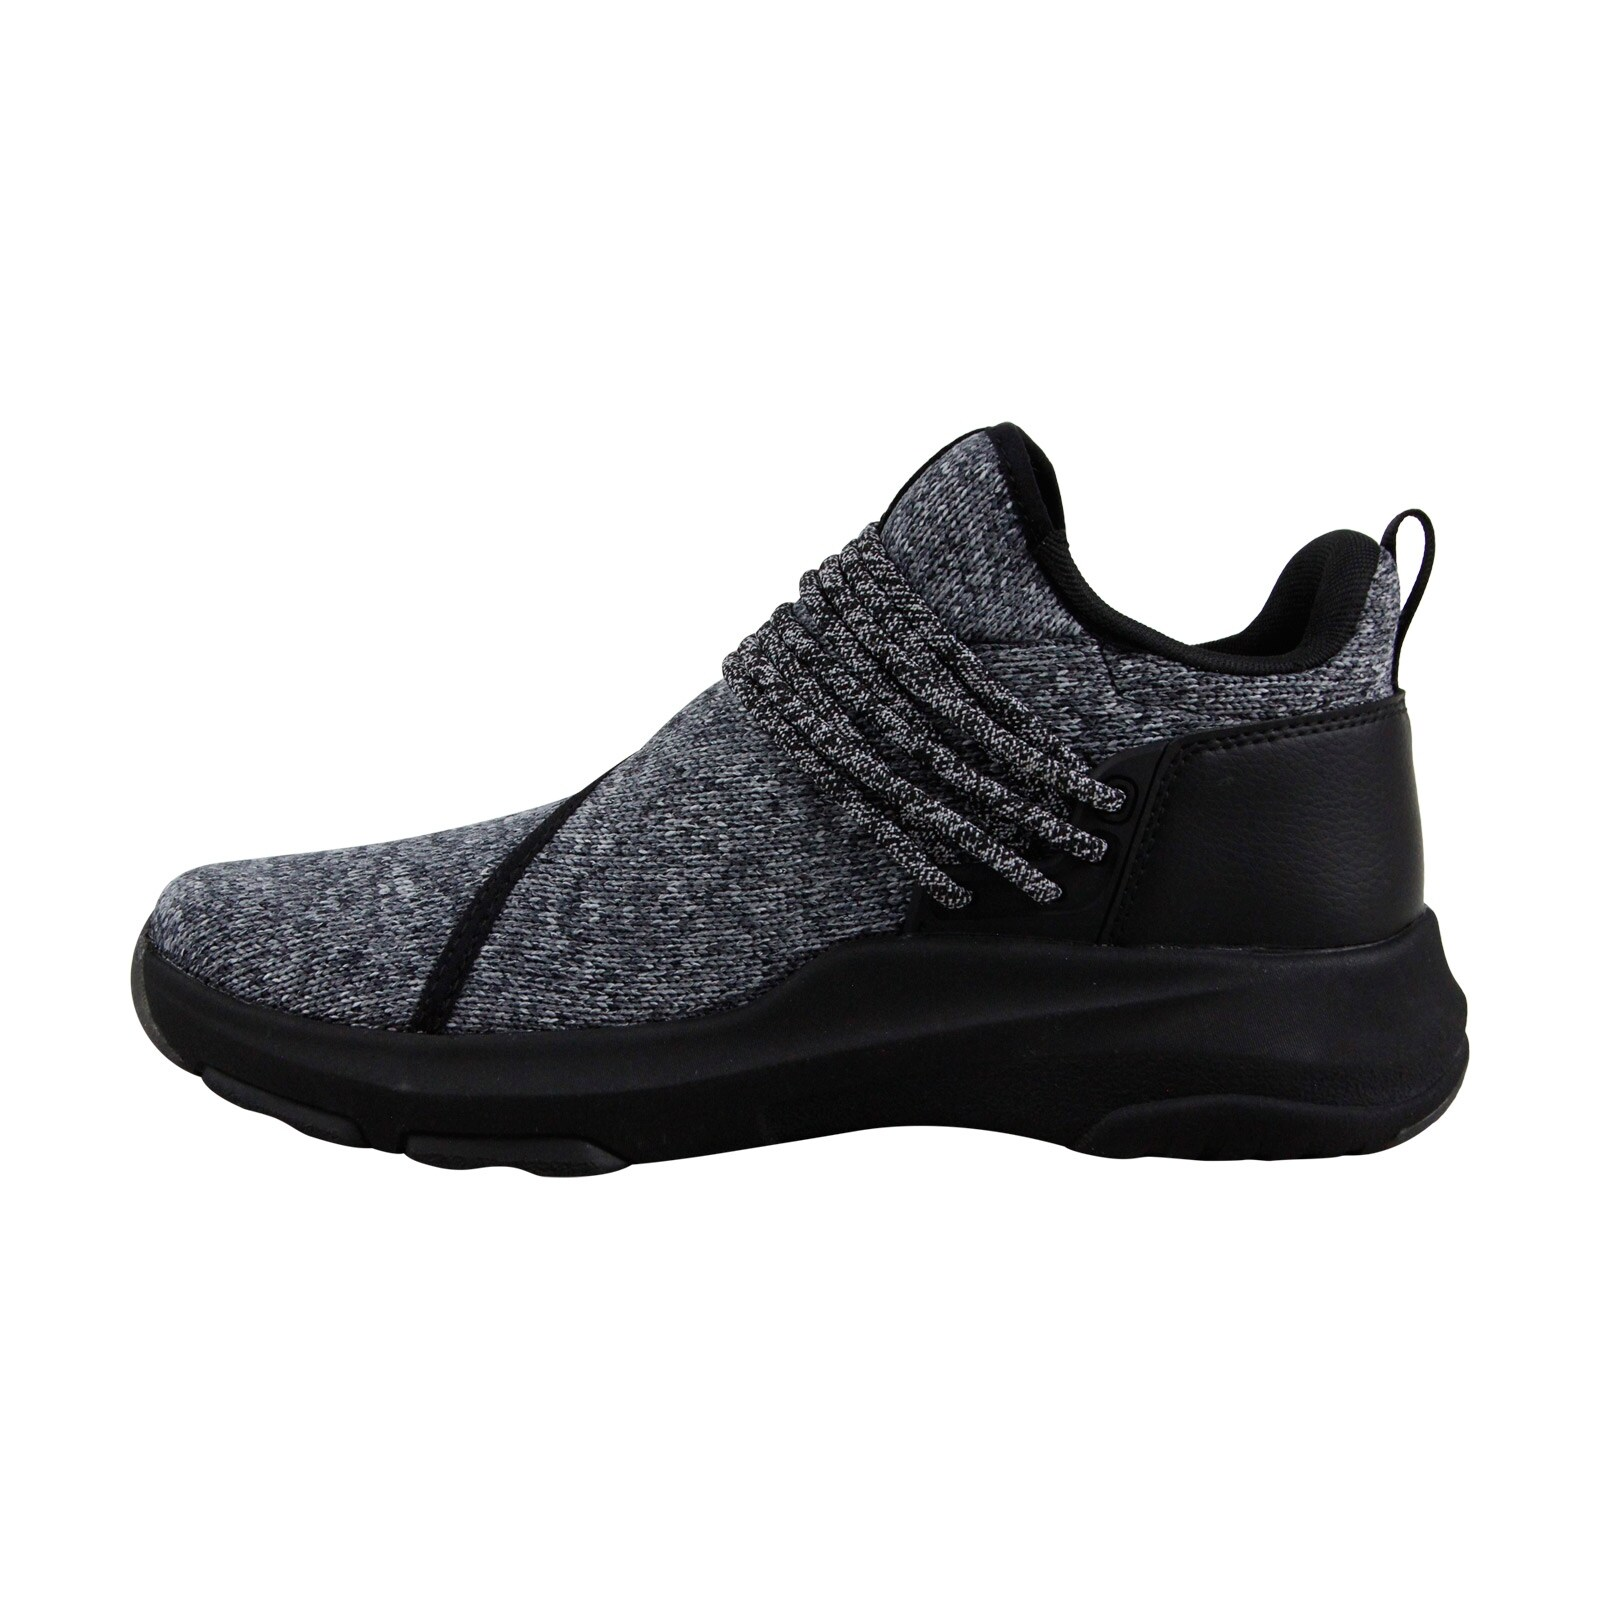 691ffb7c4443 Shop Skechers One Element Ultra Atomic Womens Gray Athletic Training Shoes  - Free Shipping On Orders Over  45 - Overstock - 23601624